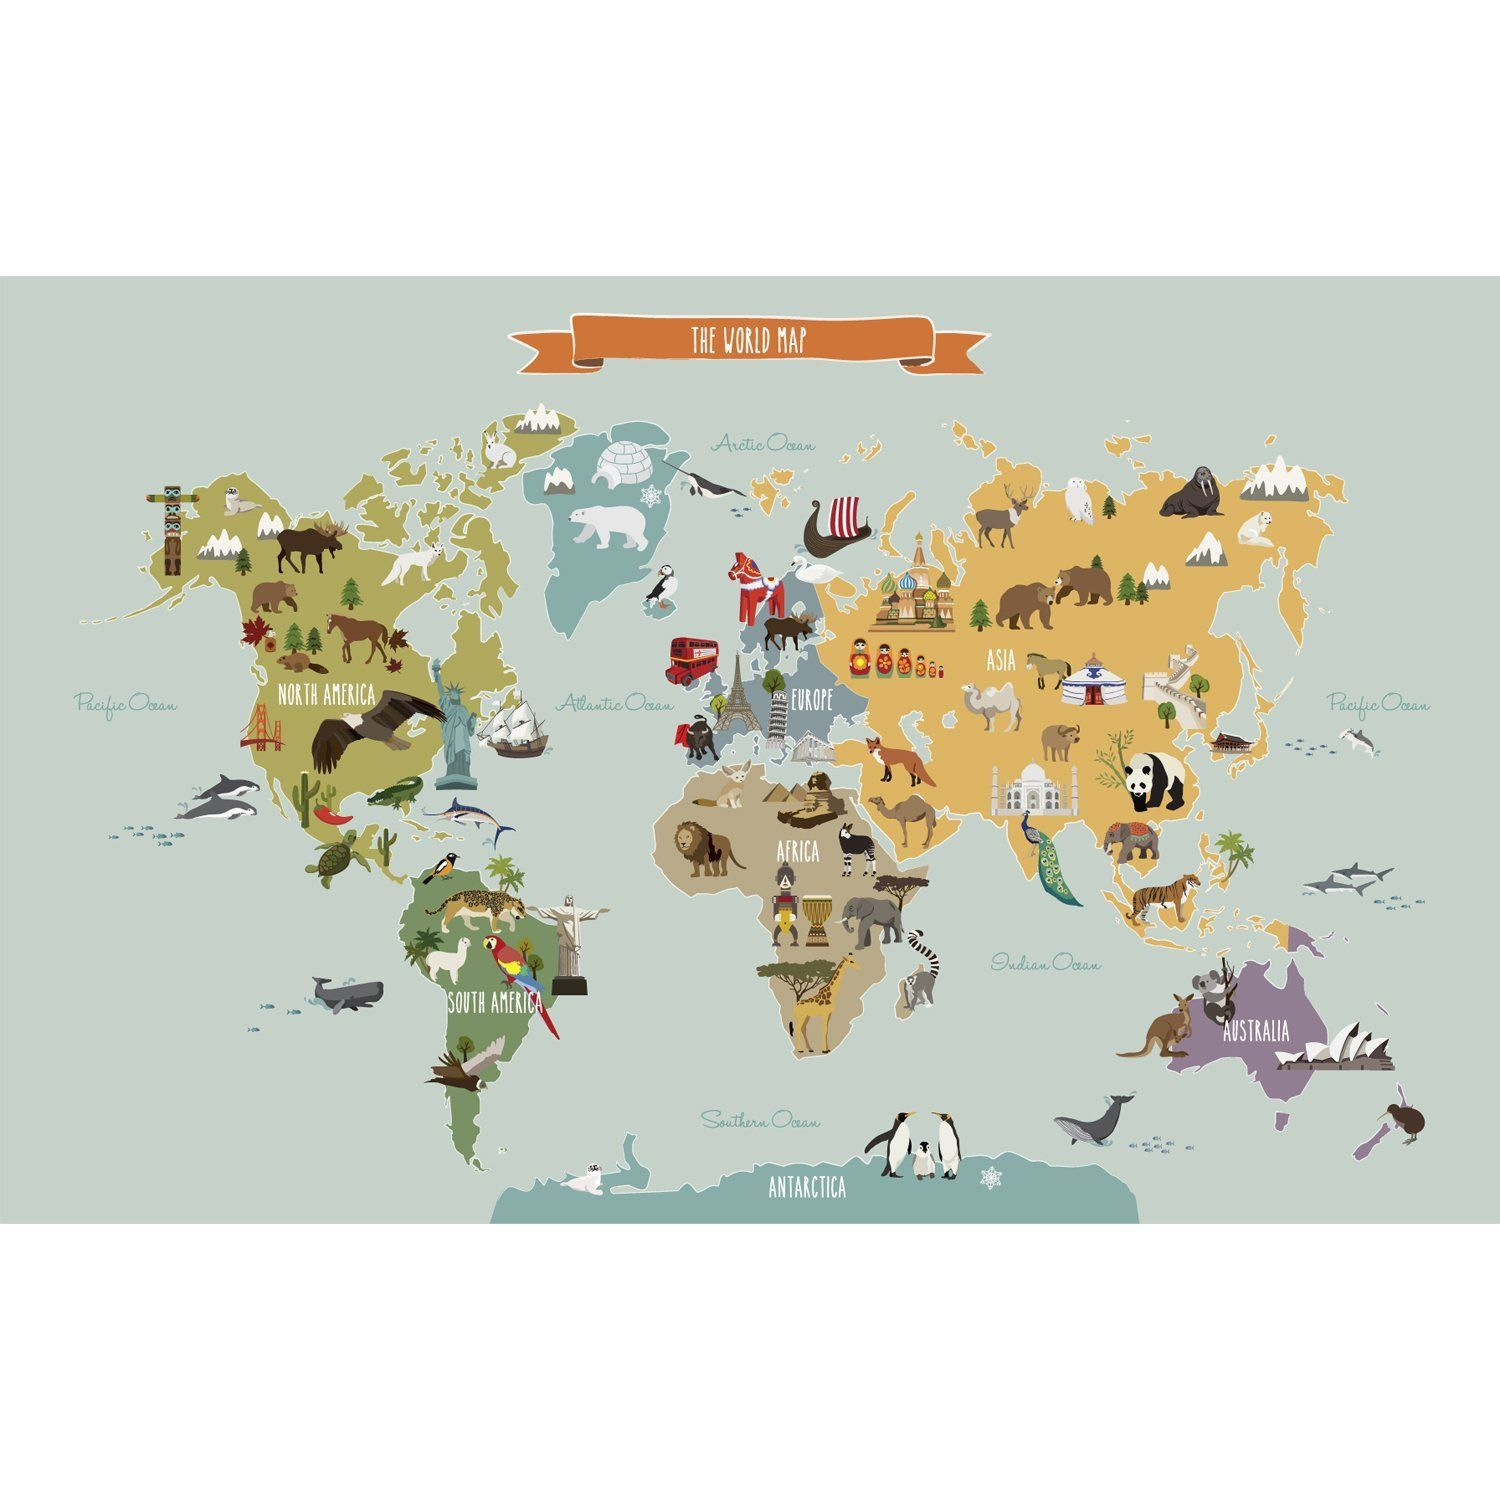 Amazon world map peel and stick wall print small 38 w x 24 amazon world map peel and stick wall print small 38 w x 24 h gumiabroncs Image collections